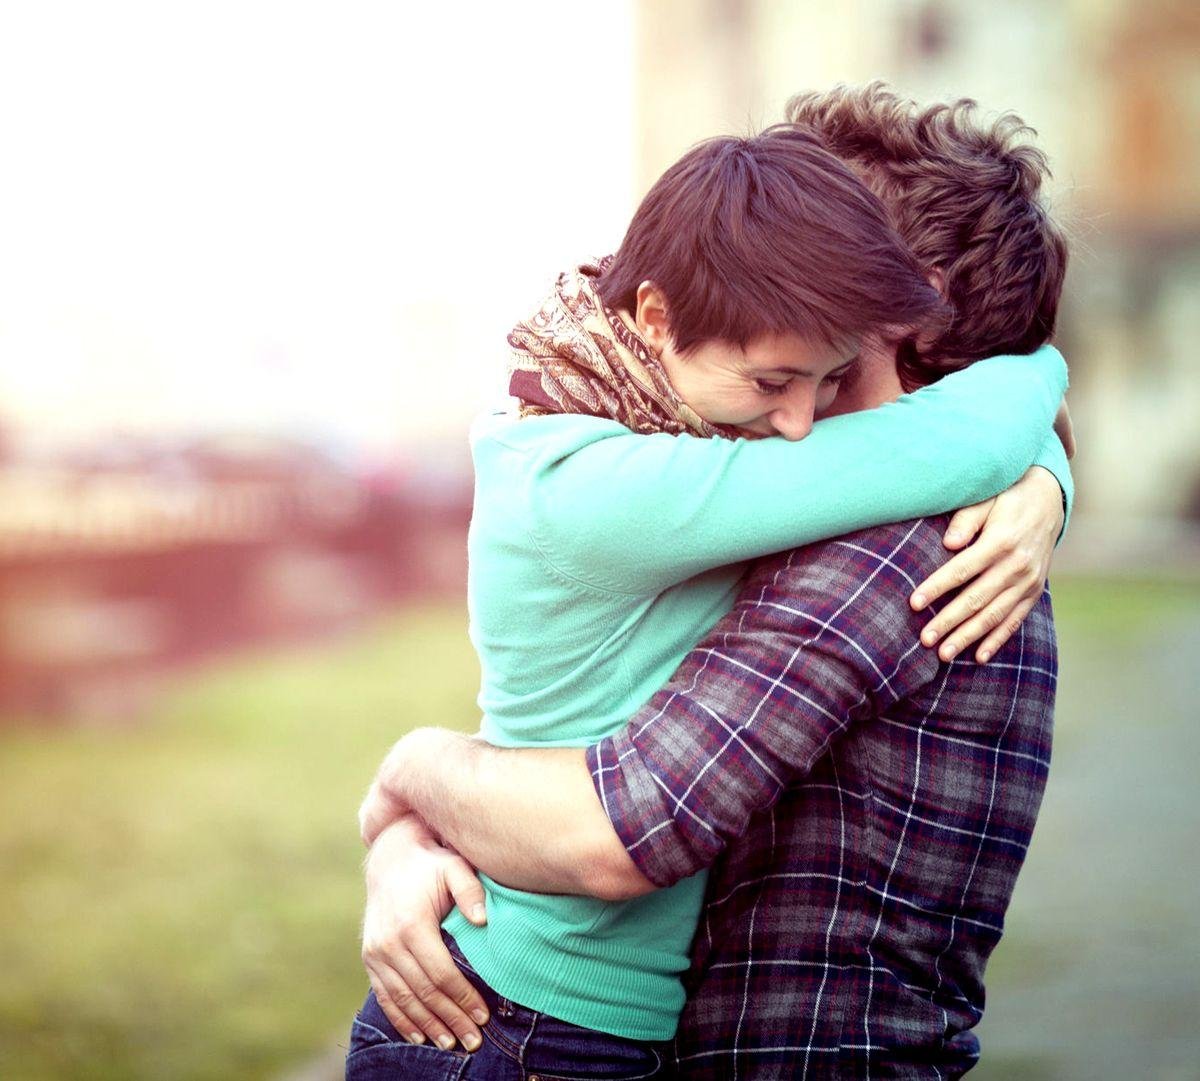 romantic couple hug hd wallpapers - wallpaper cave